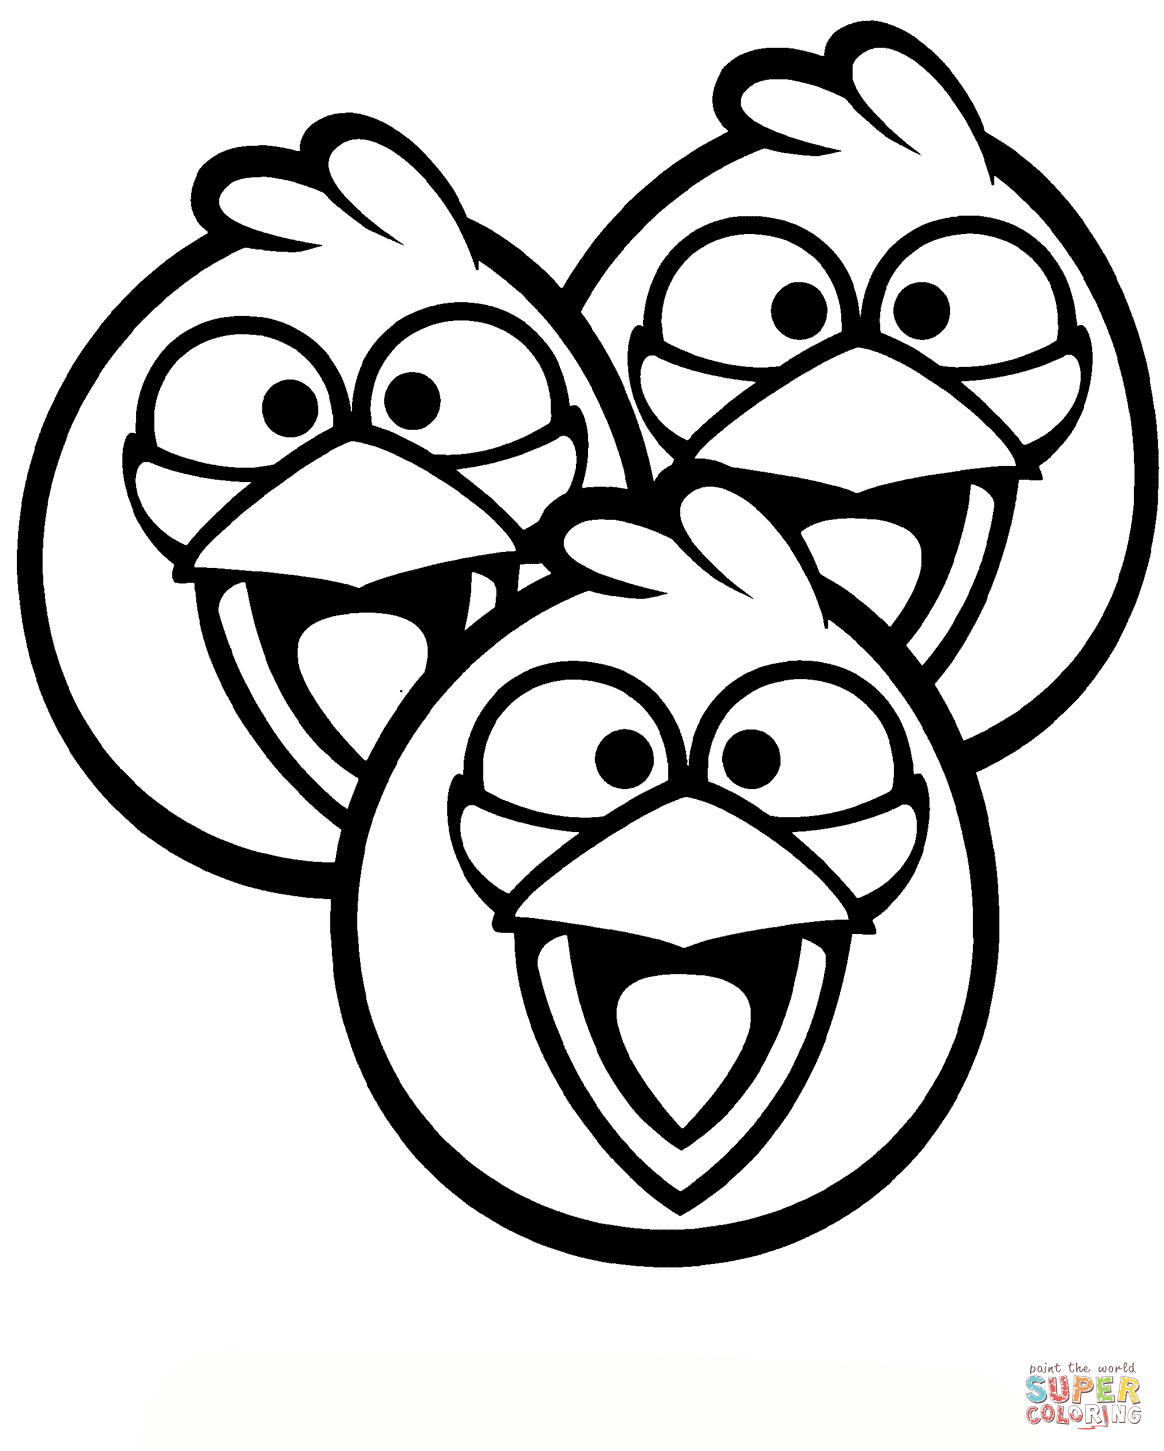 angry birds pictures to print angry birds character coloring pages minister coloring to birds print pictures angry